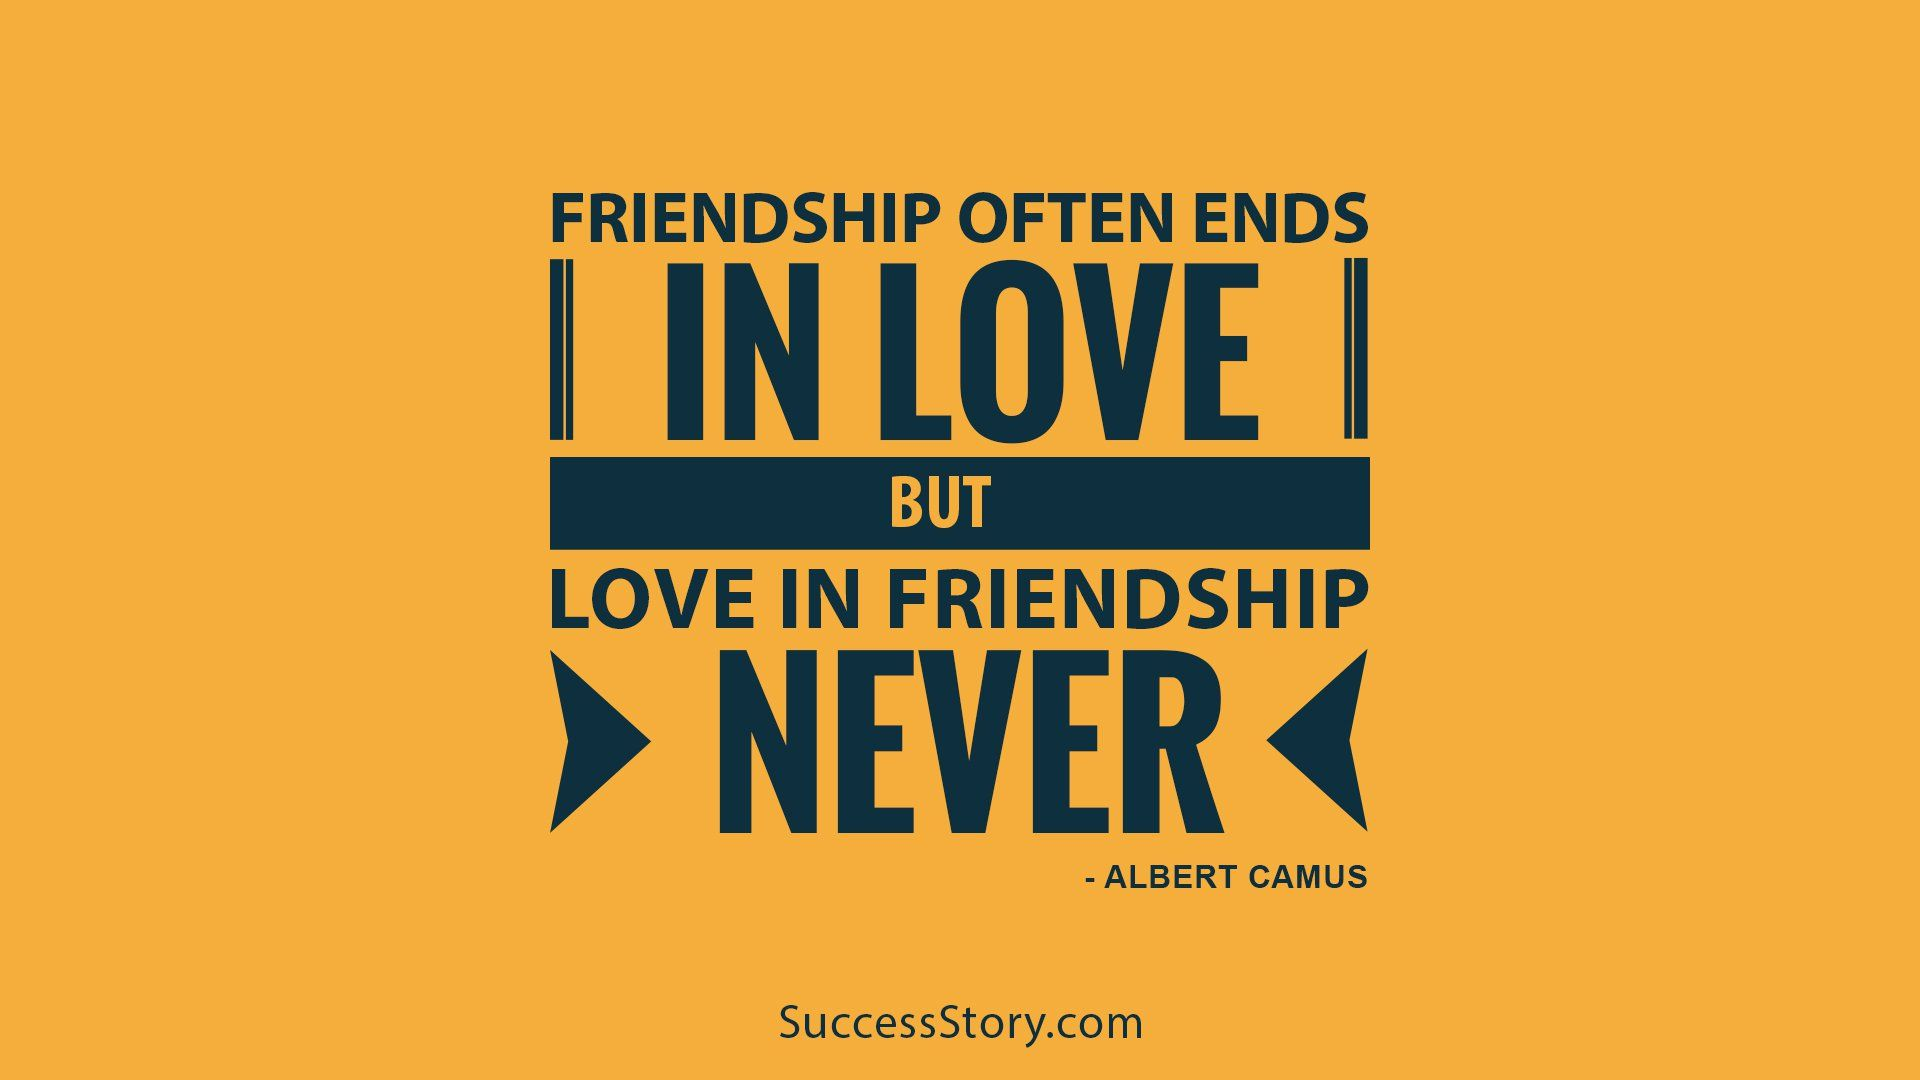 Quotable Quotes About Friendship Friendship Often Ends In Love But Love In Friendship  Never